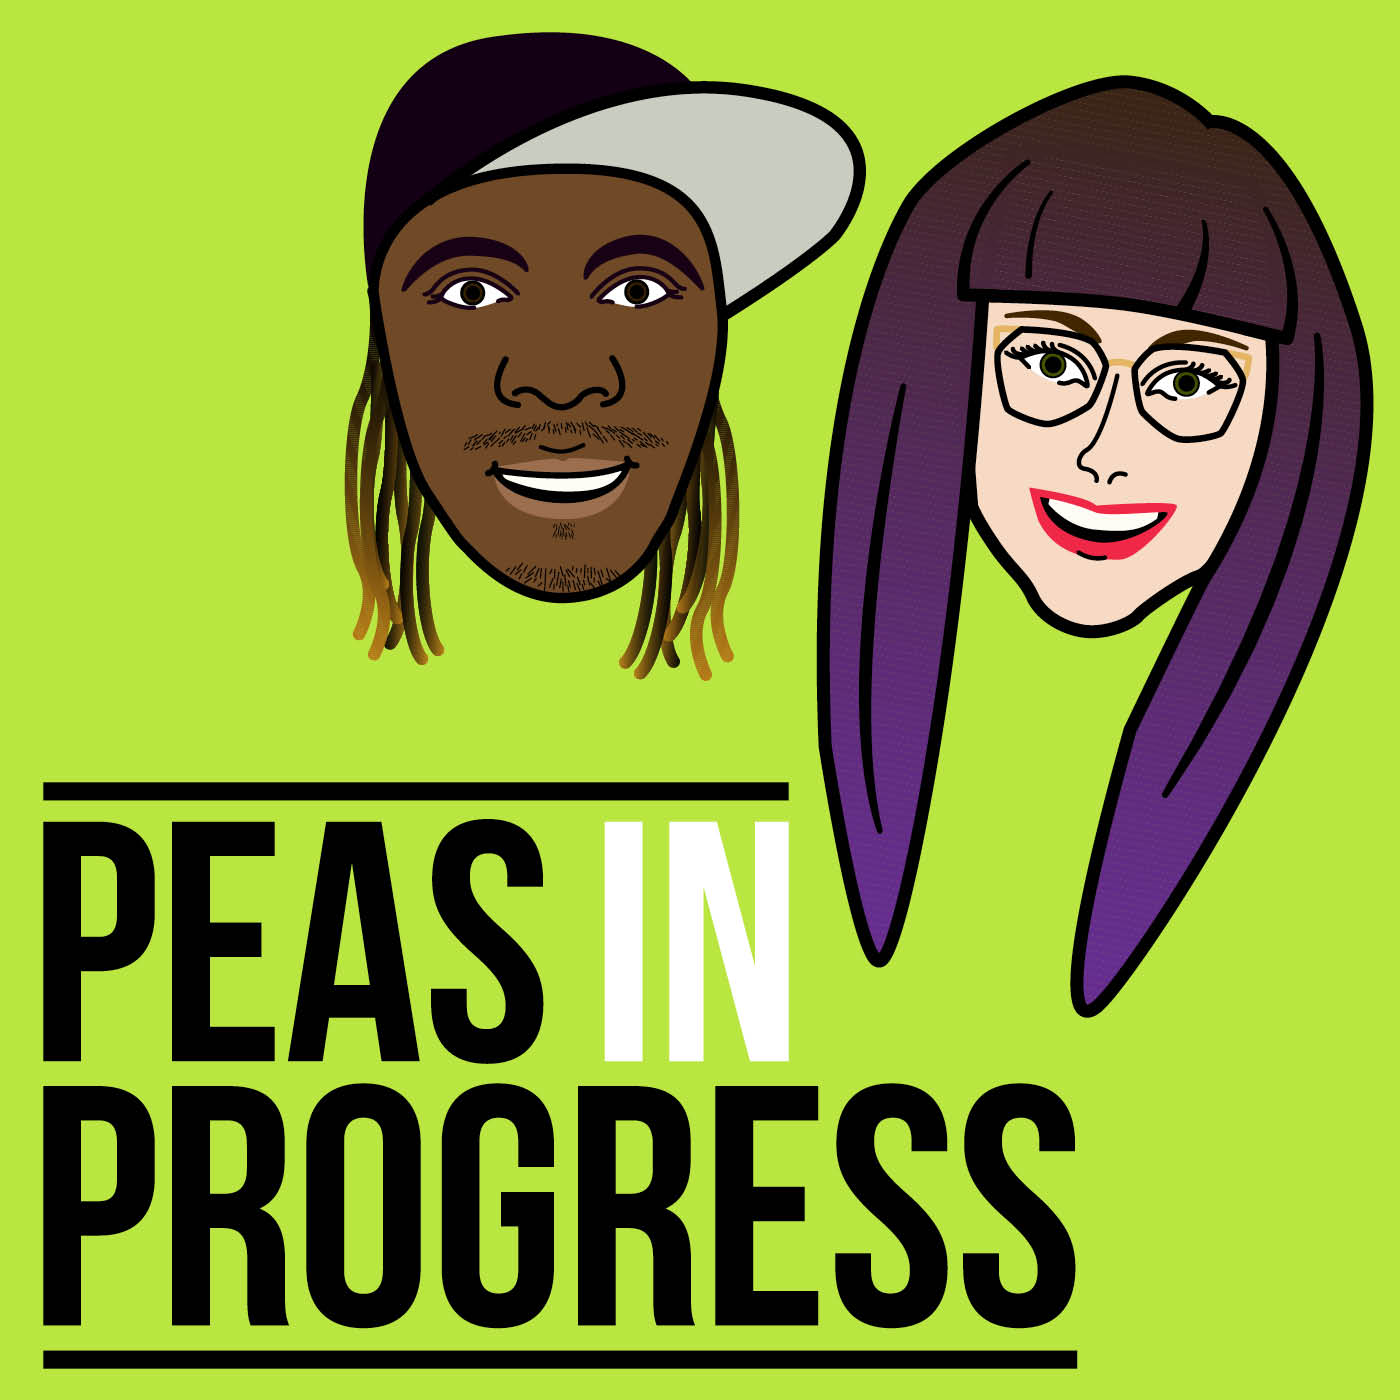 peas-in-progress-podcast-square-1400x1400.jpg